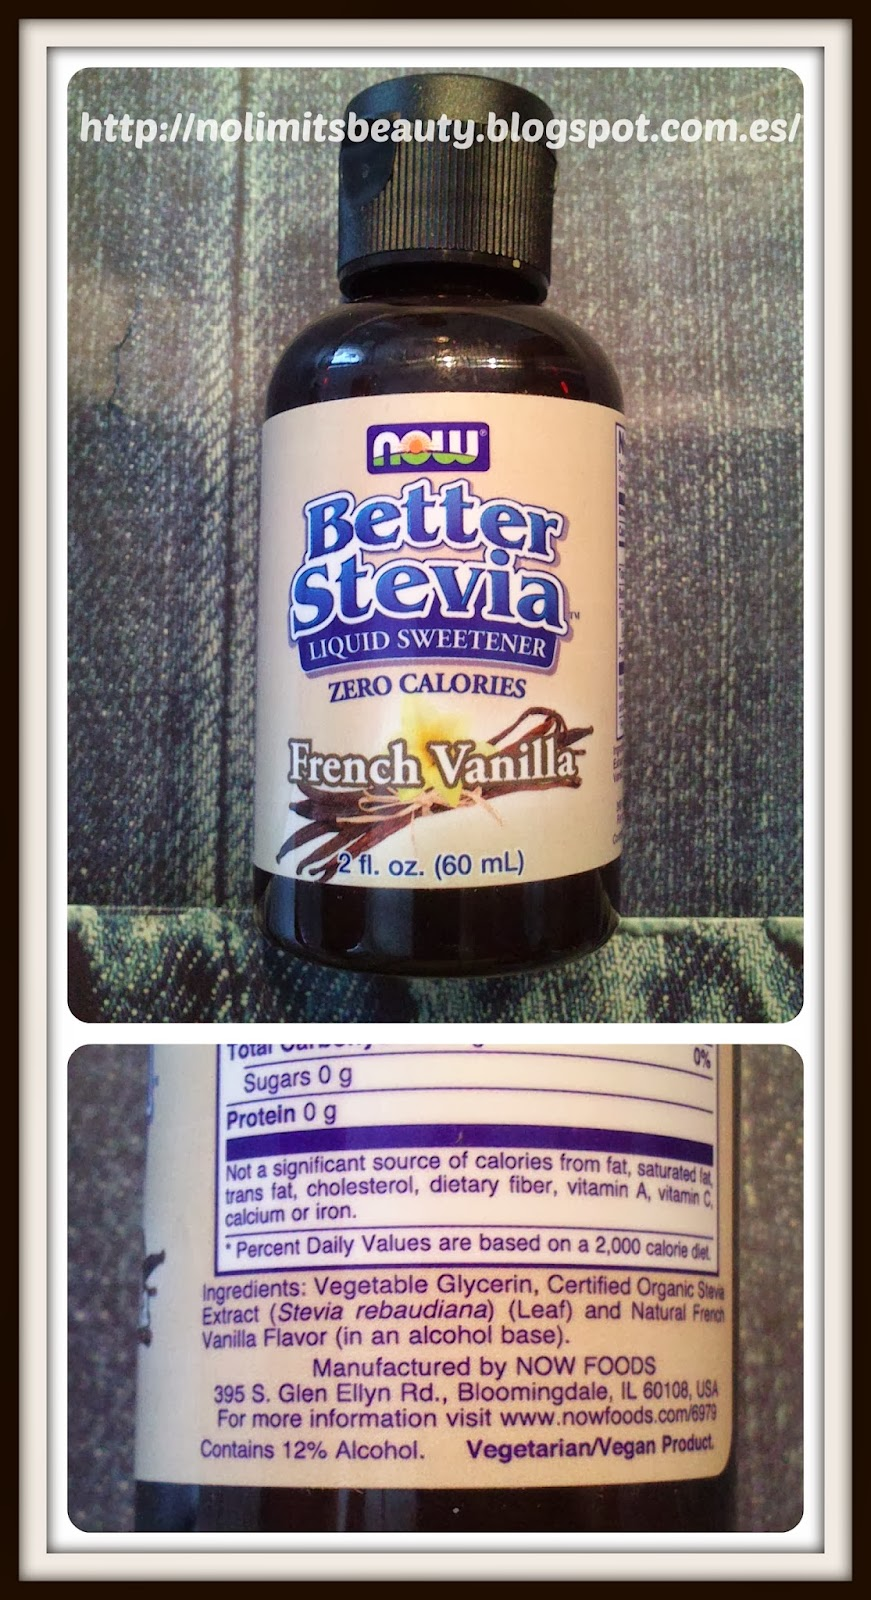 iHerb - Stevia French Vanilla - Now Foods